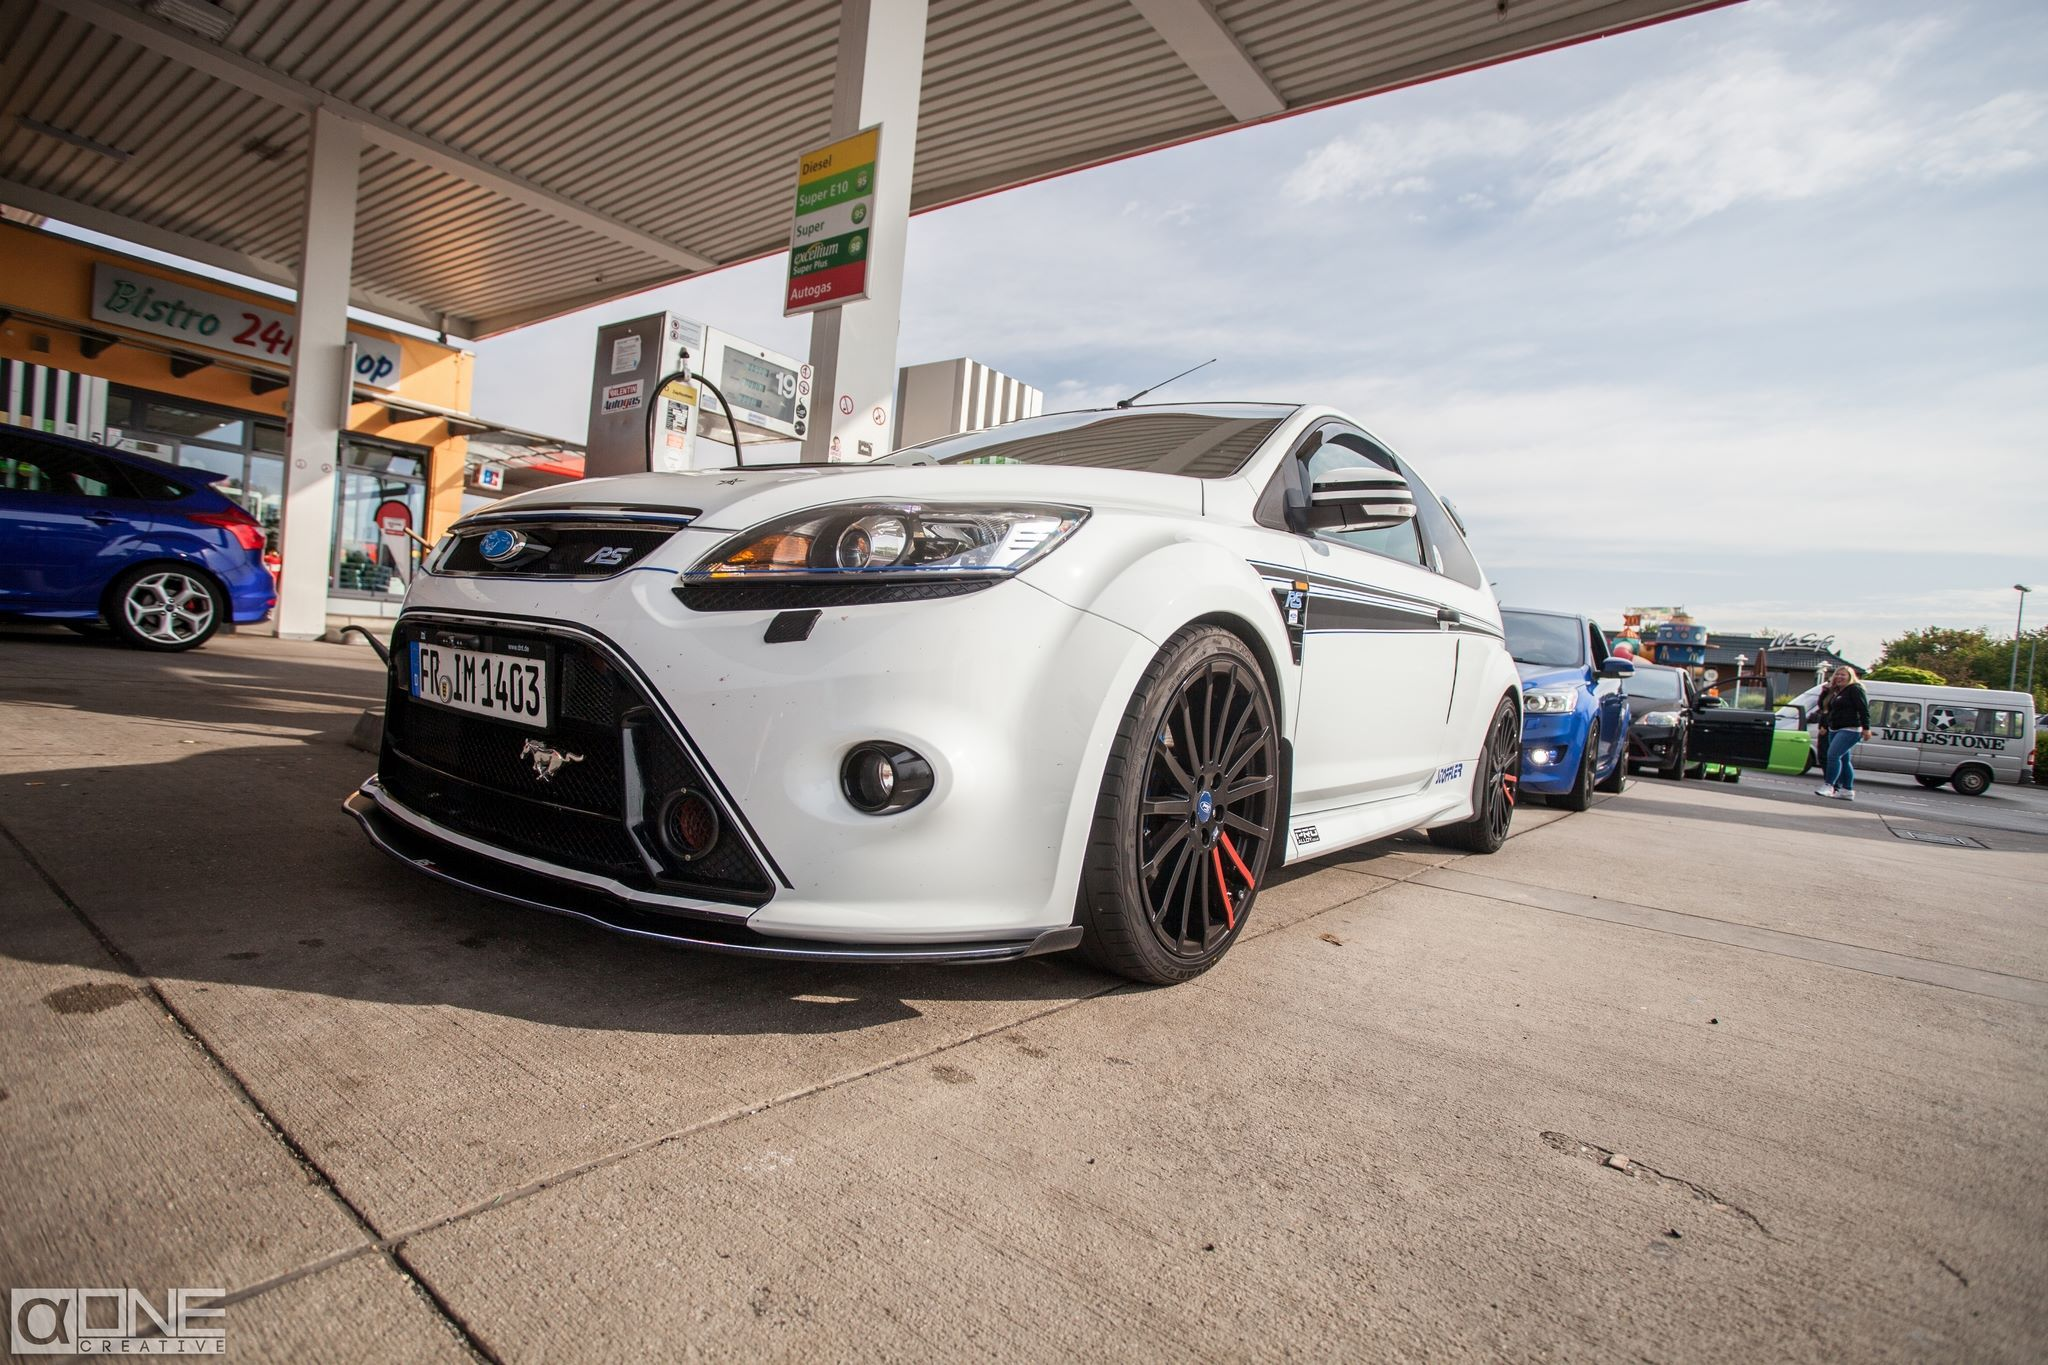 ford focus rs mk2 tuning ford focus rs ford focus. Black Bedroom Furniture Sets. Home Design Ideas